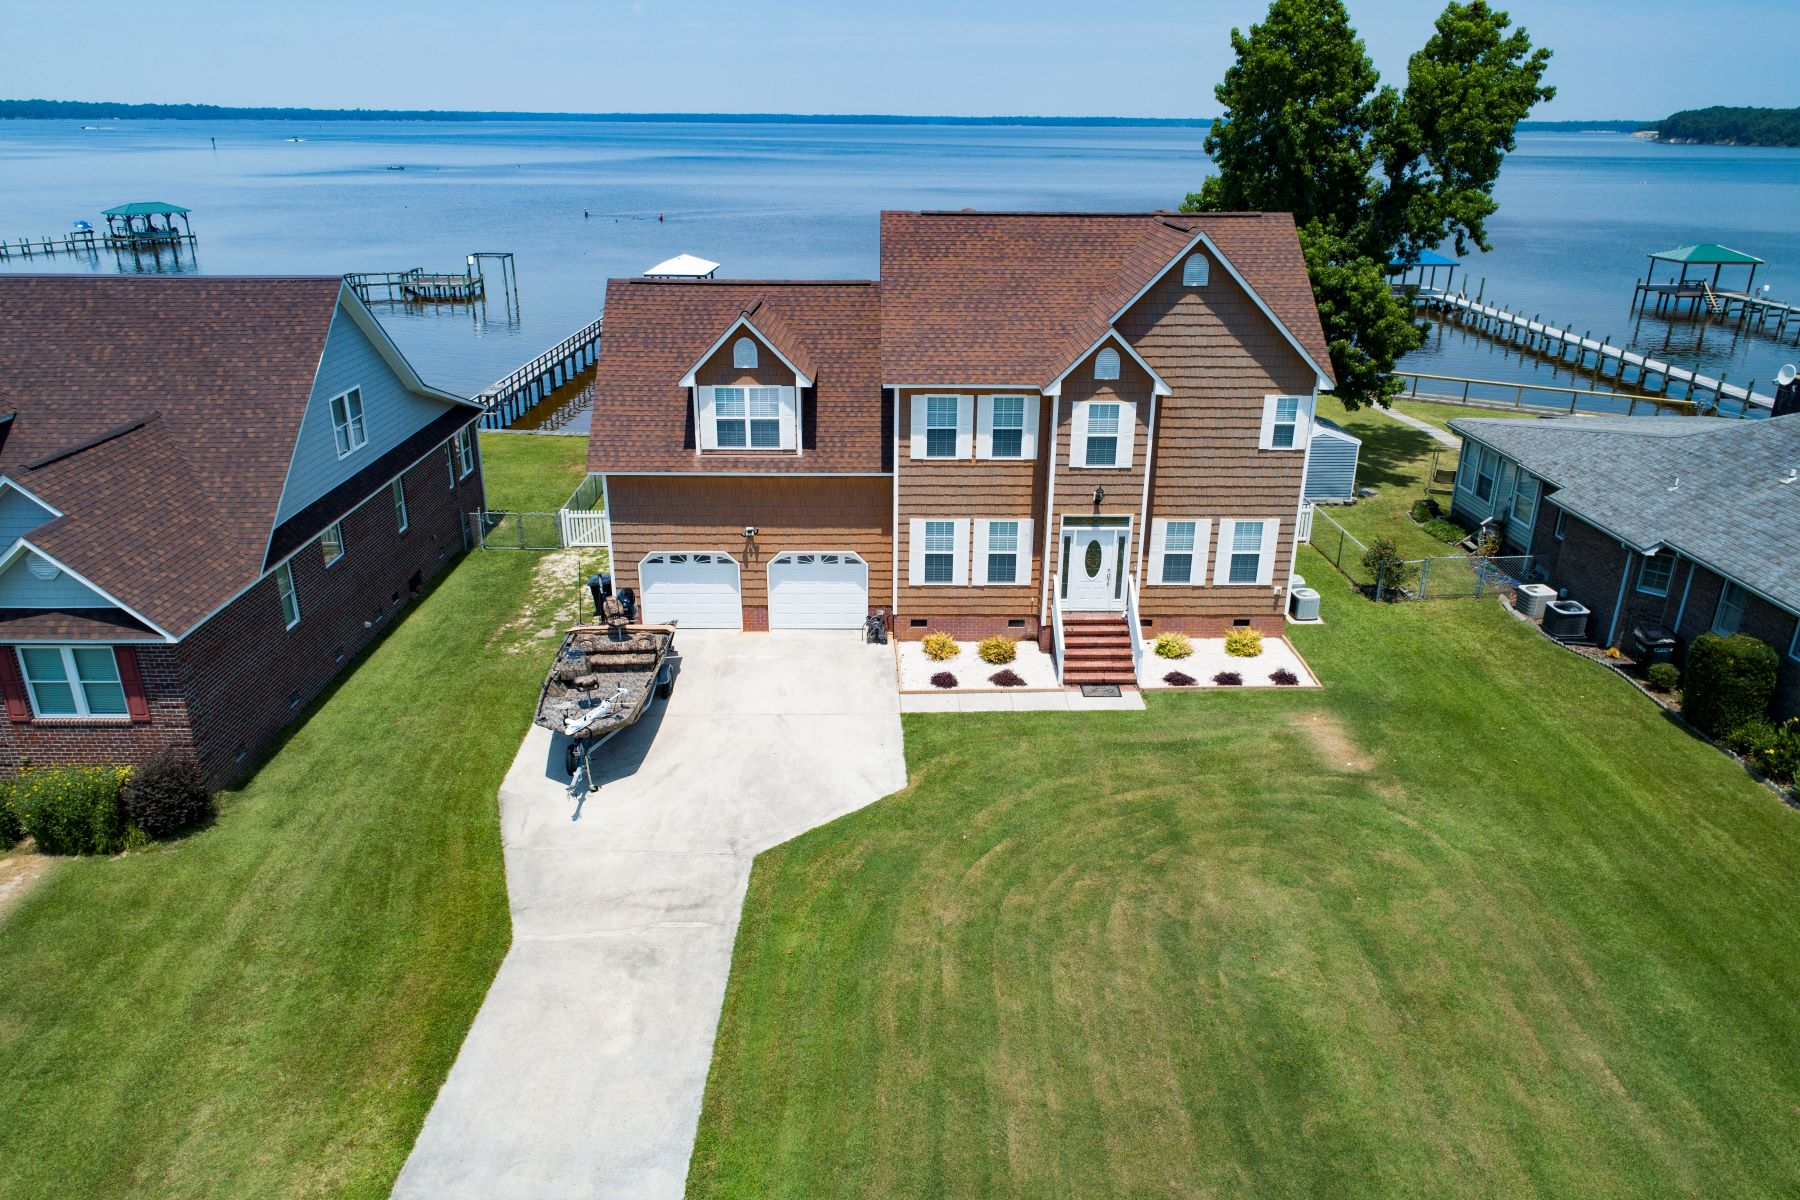 Single Family Homes for Sale at Spectacular Spacious Coastal NC Riverfront Home 607 Willbrook Circle Sneads Ferry, North Carolina 28460 United States